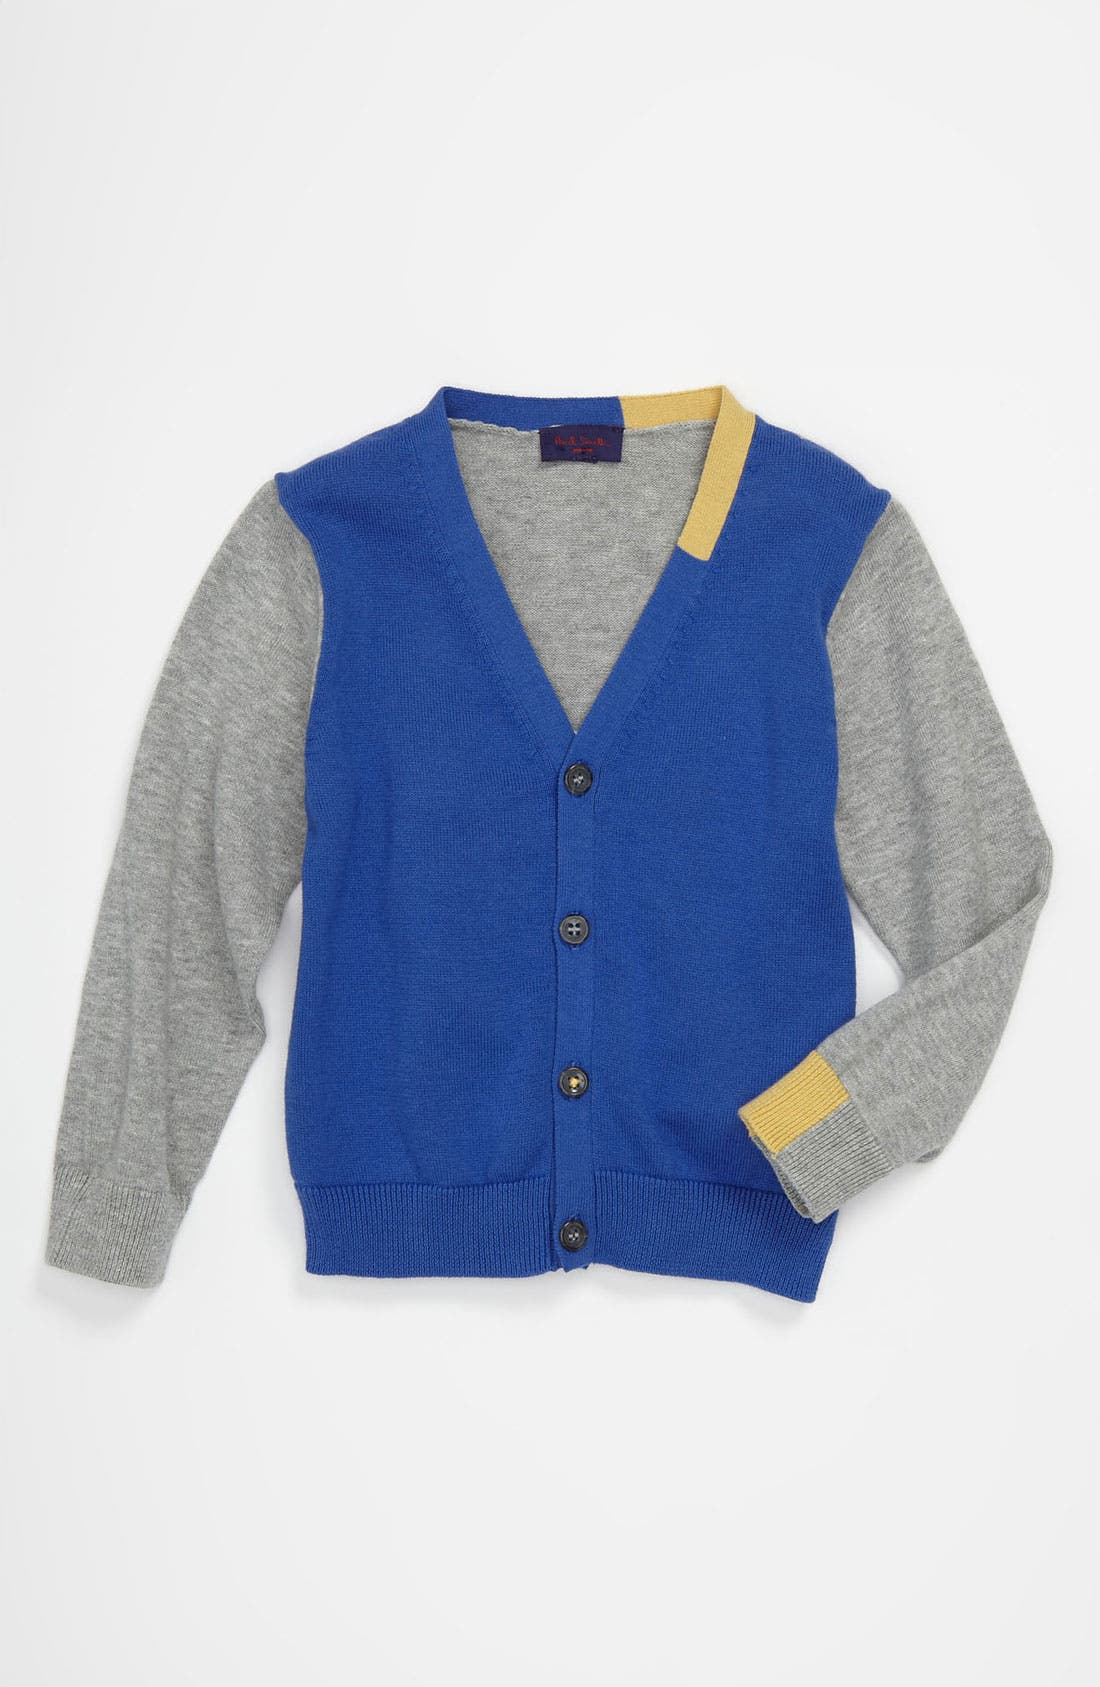 Alternate Image 1 Selected - Paul Smith Junior Cardigan (Baby & Toddler)